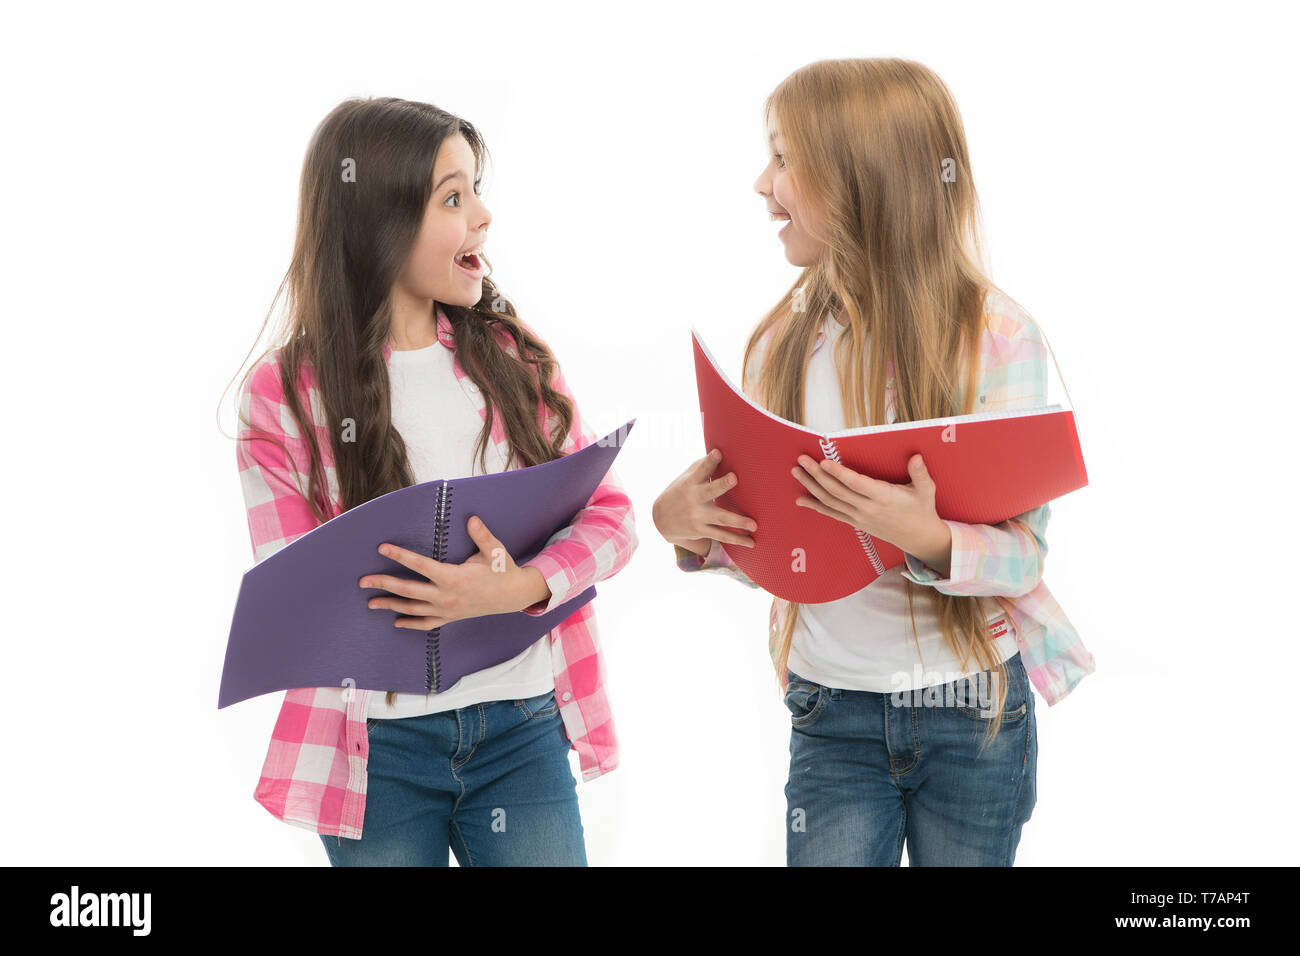 Worry about passing exam. Check knowledge. Final exam coming. Girls hold textbooks white background. School exam concept. Prepare for exam. School stationery. Pupils carrying textbooks to classes. - Stock Image